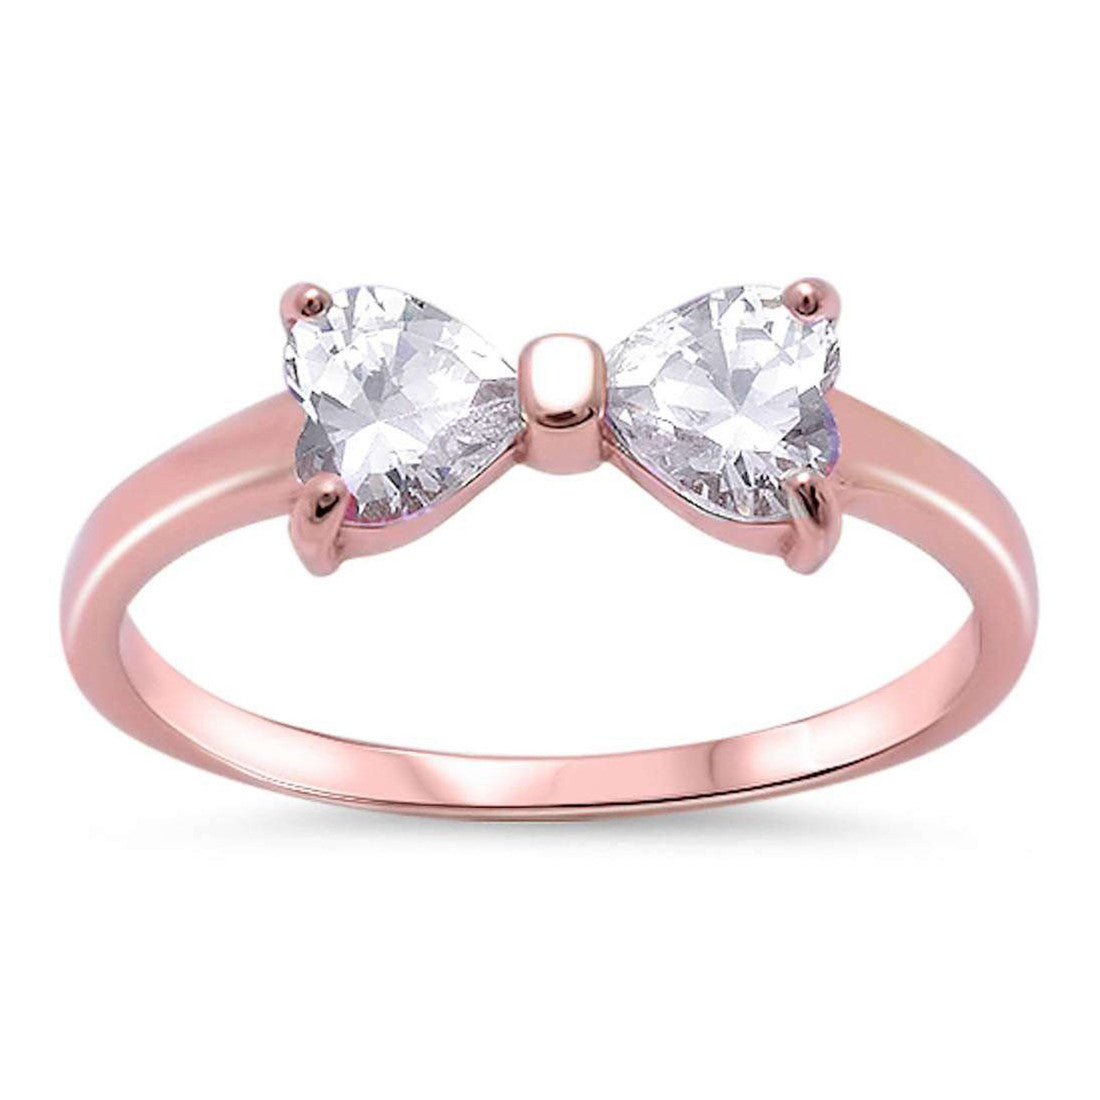 rings elegance ring zircon princess ora pink jewelry cubic with crown jewel wedding heart lo